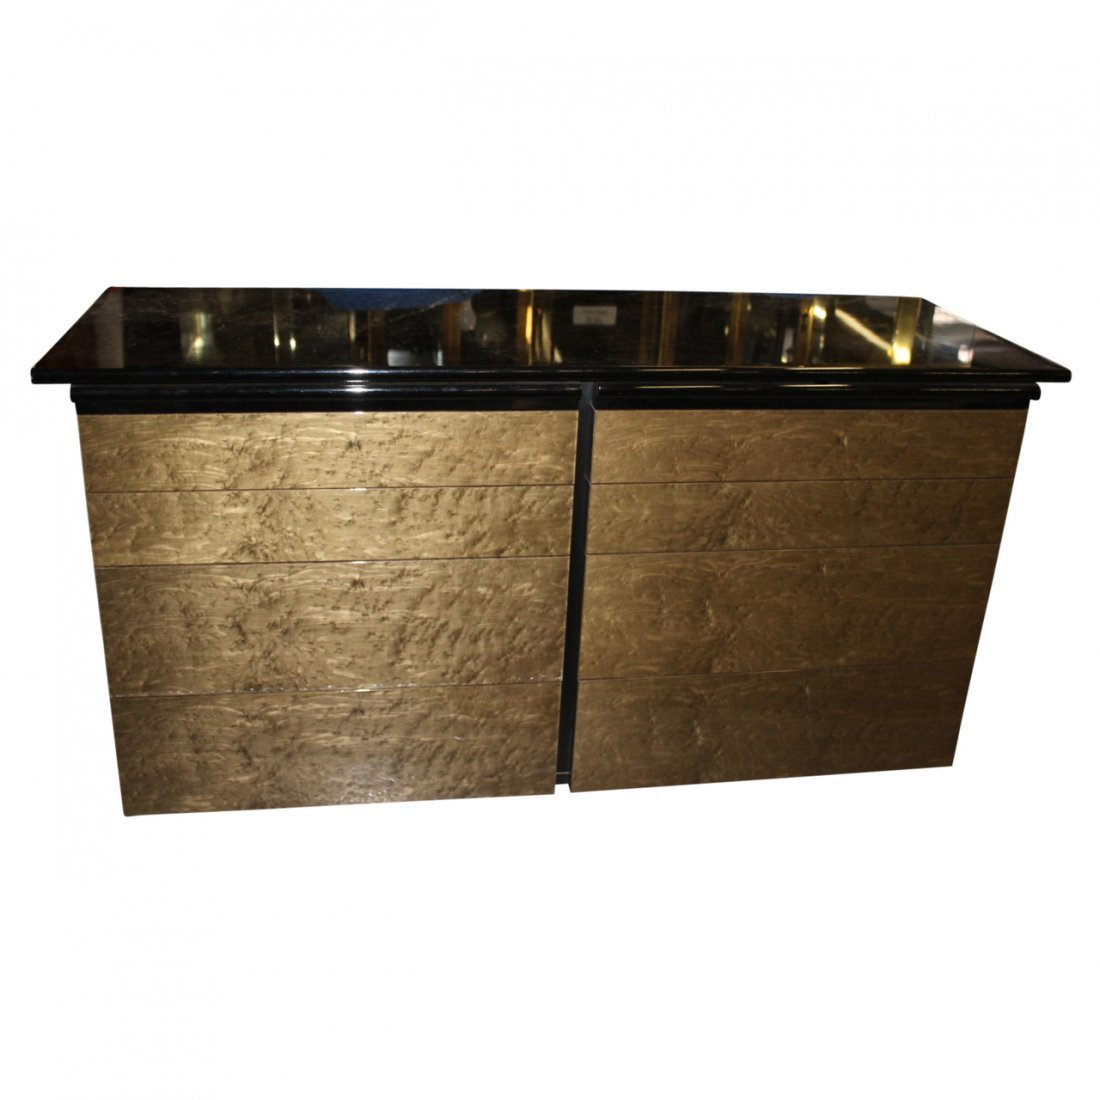 Pair of large Lacquer Bureau's by Maurice Villency